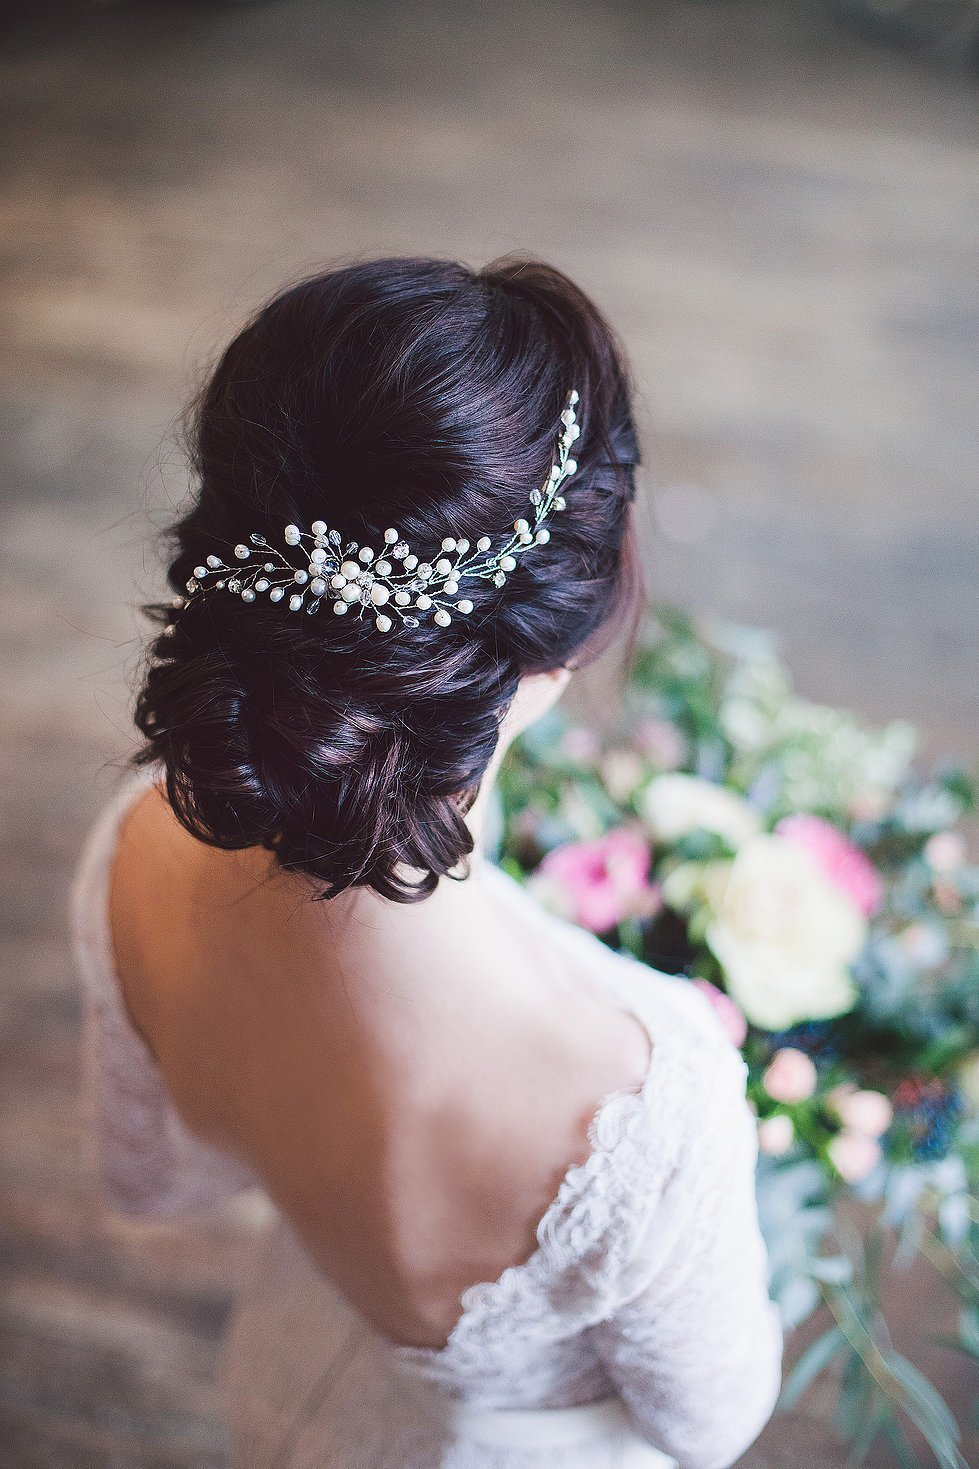 The Best 25 Drop Dead Bridal Updo Hairstyles Ideas For Any Wedding Venues – Stylish Wedd Blog Pictures